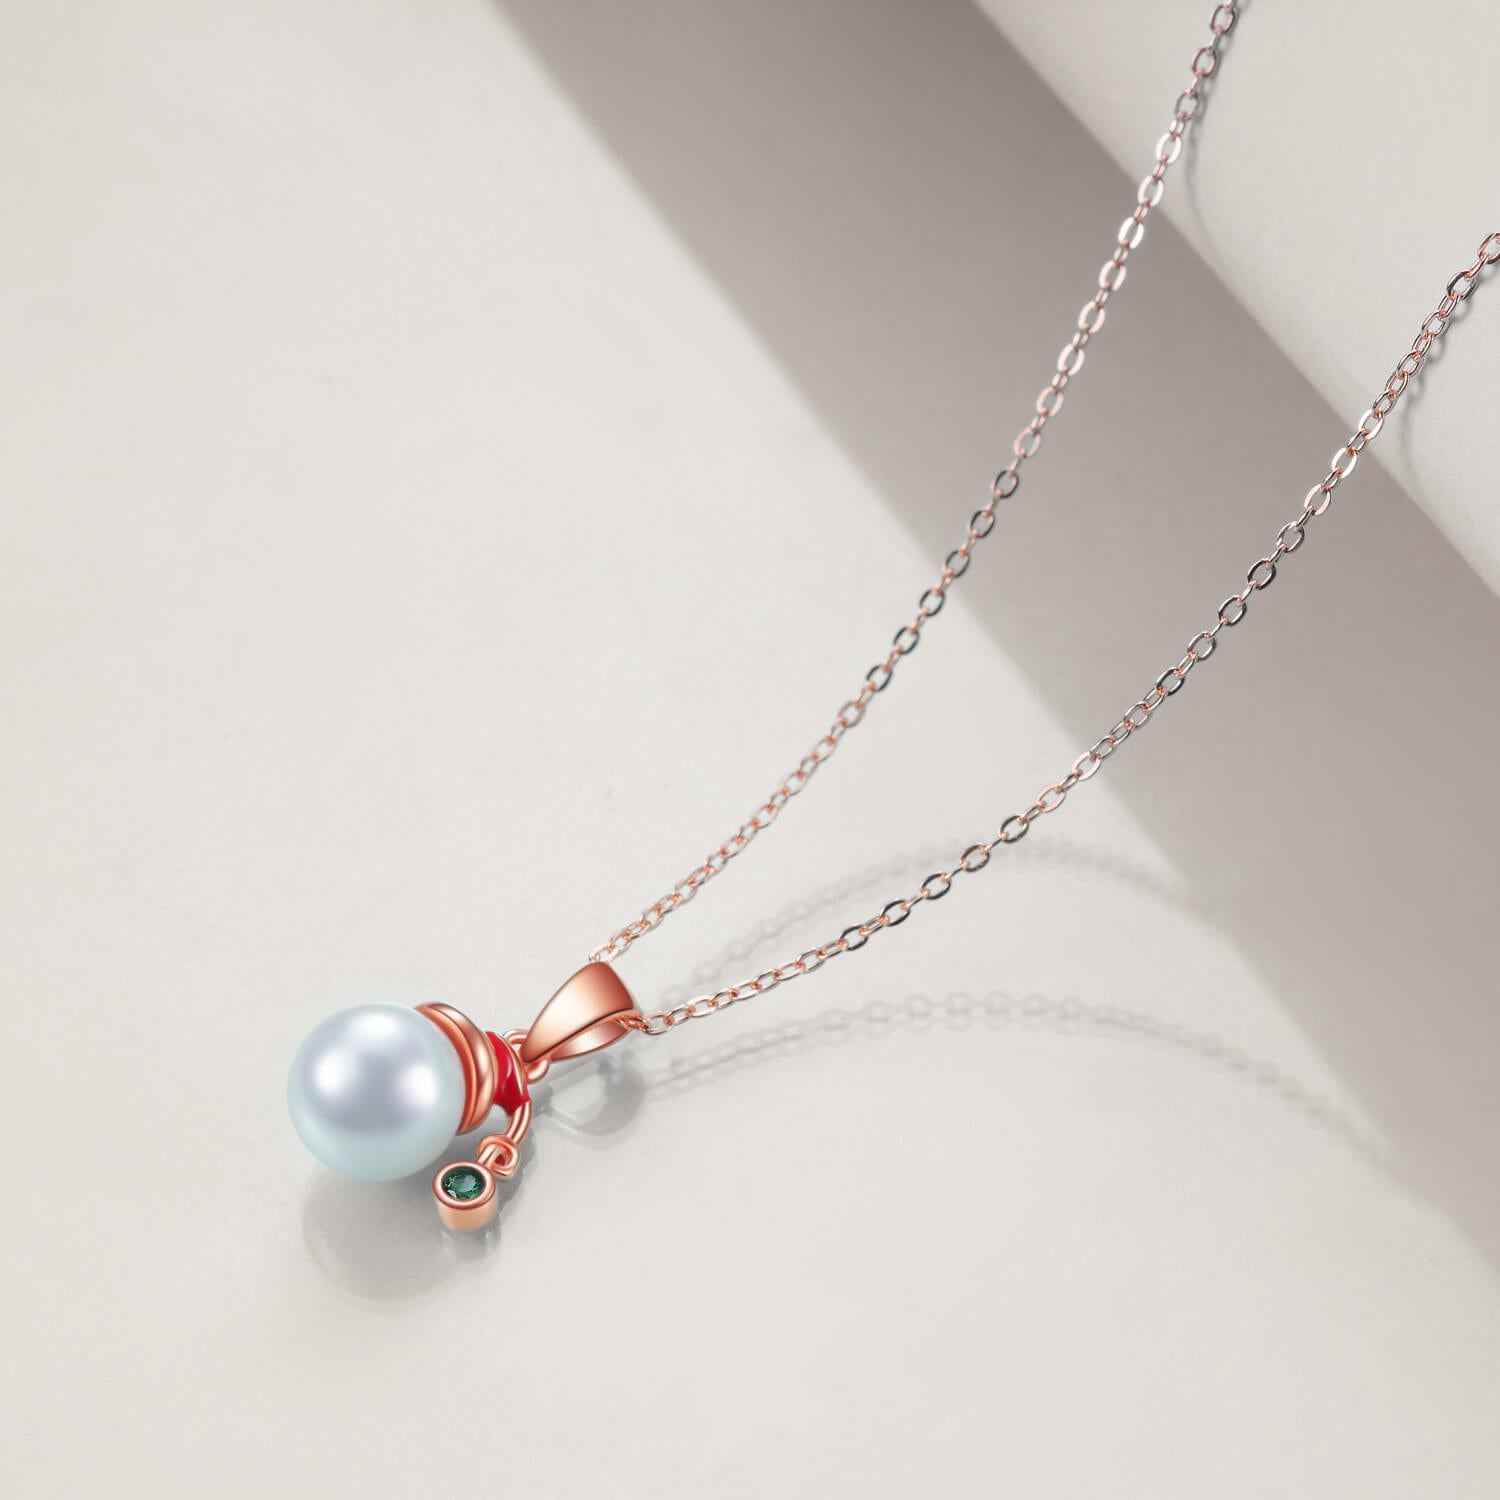 925 Sterling Silver Pearl Snowman Pendant Necklace Christmas Gift - onlyone